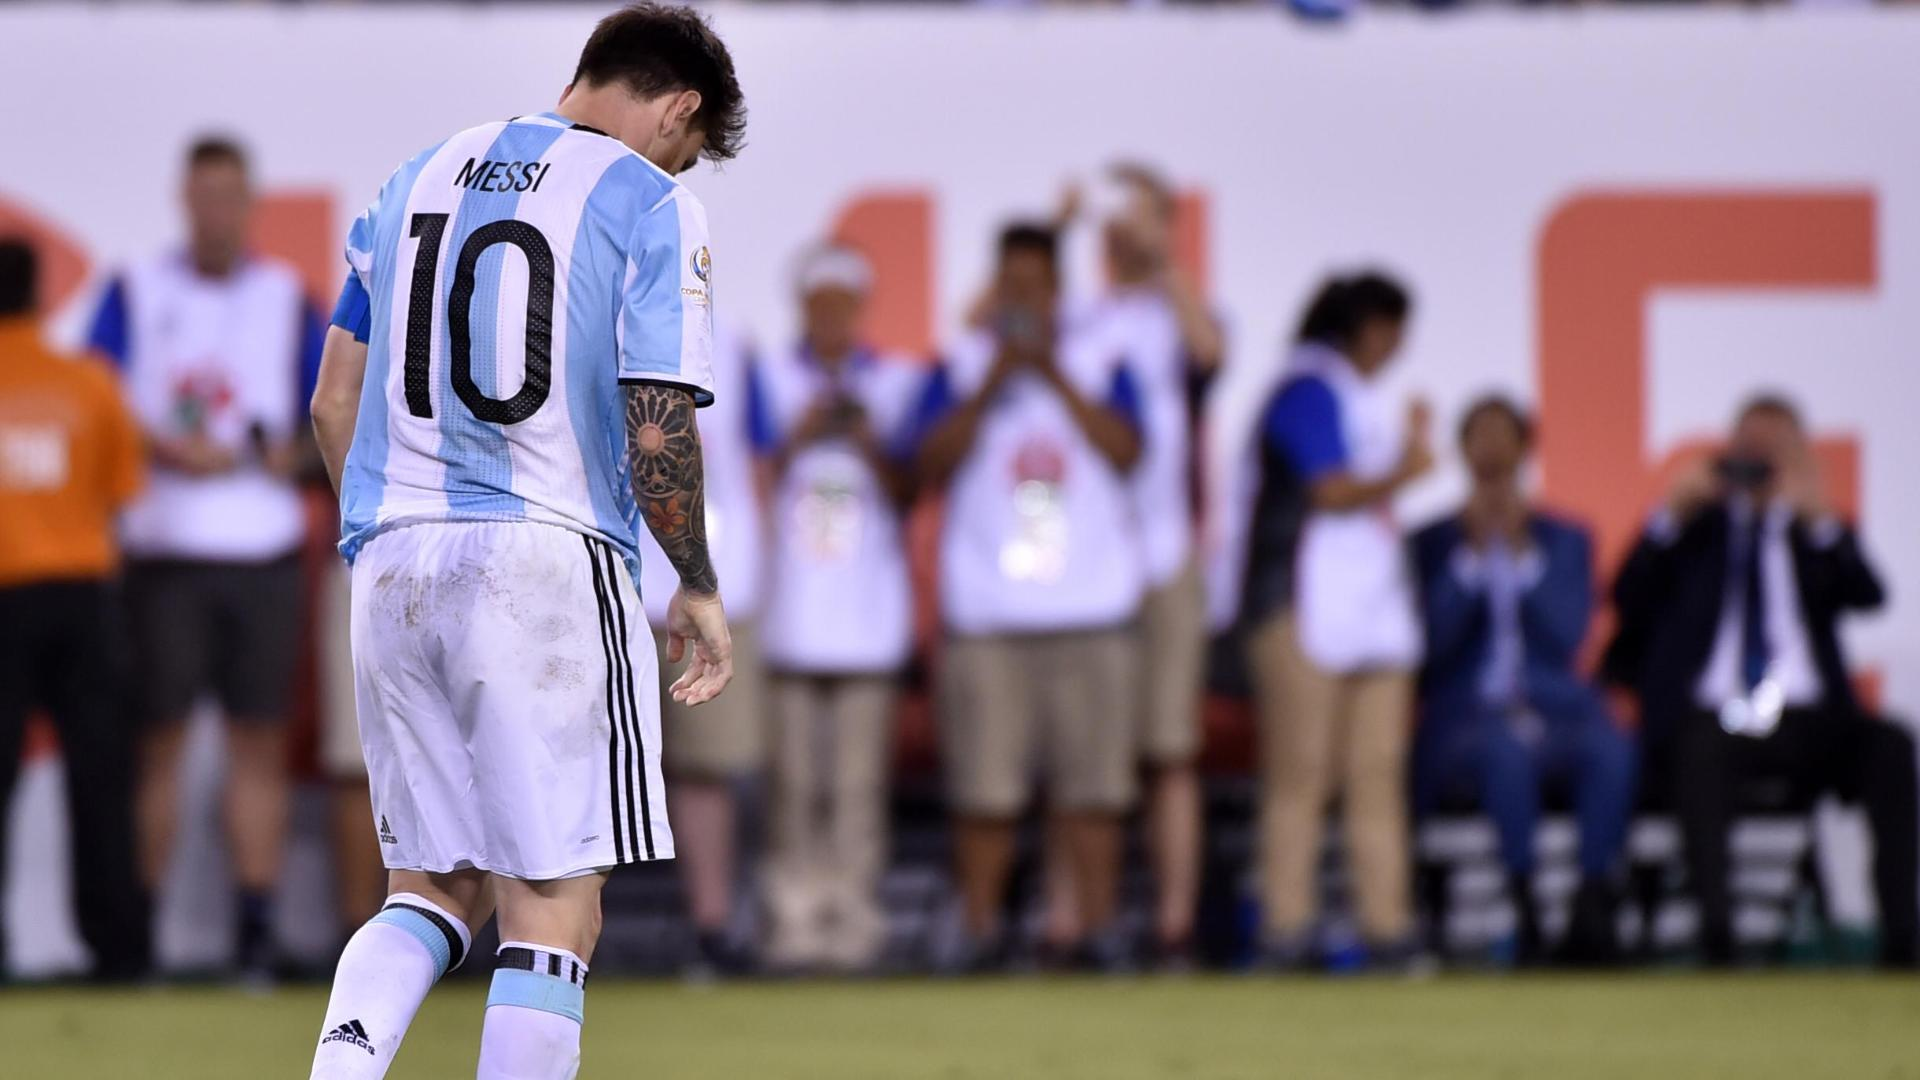 Lionel Messi's pain, Argentina woe show power of international football